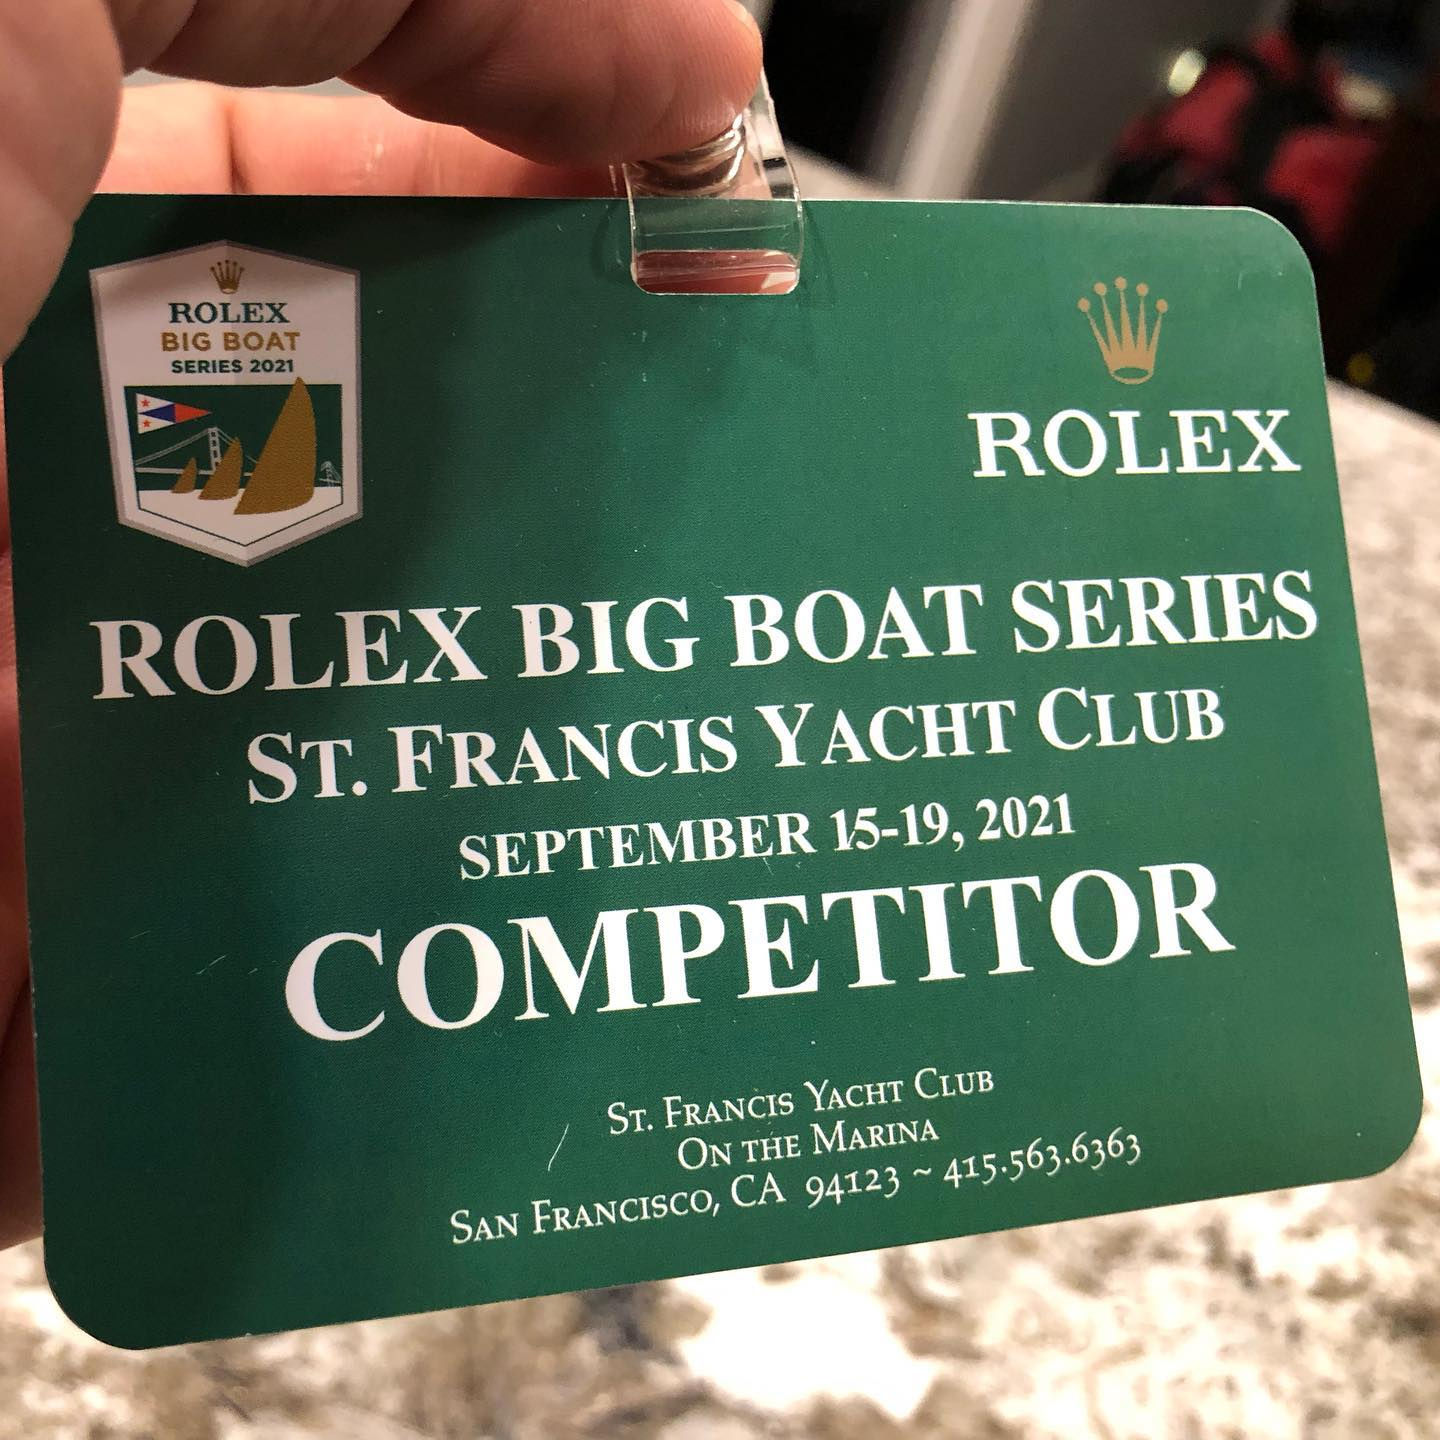 2021 Rolex Big Boat series day 2 on Starballs  retired some old gloves, found a cracked shackle. Thanks to Moni for the spare soft shackle :)